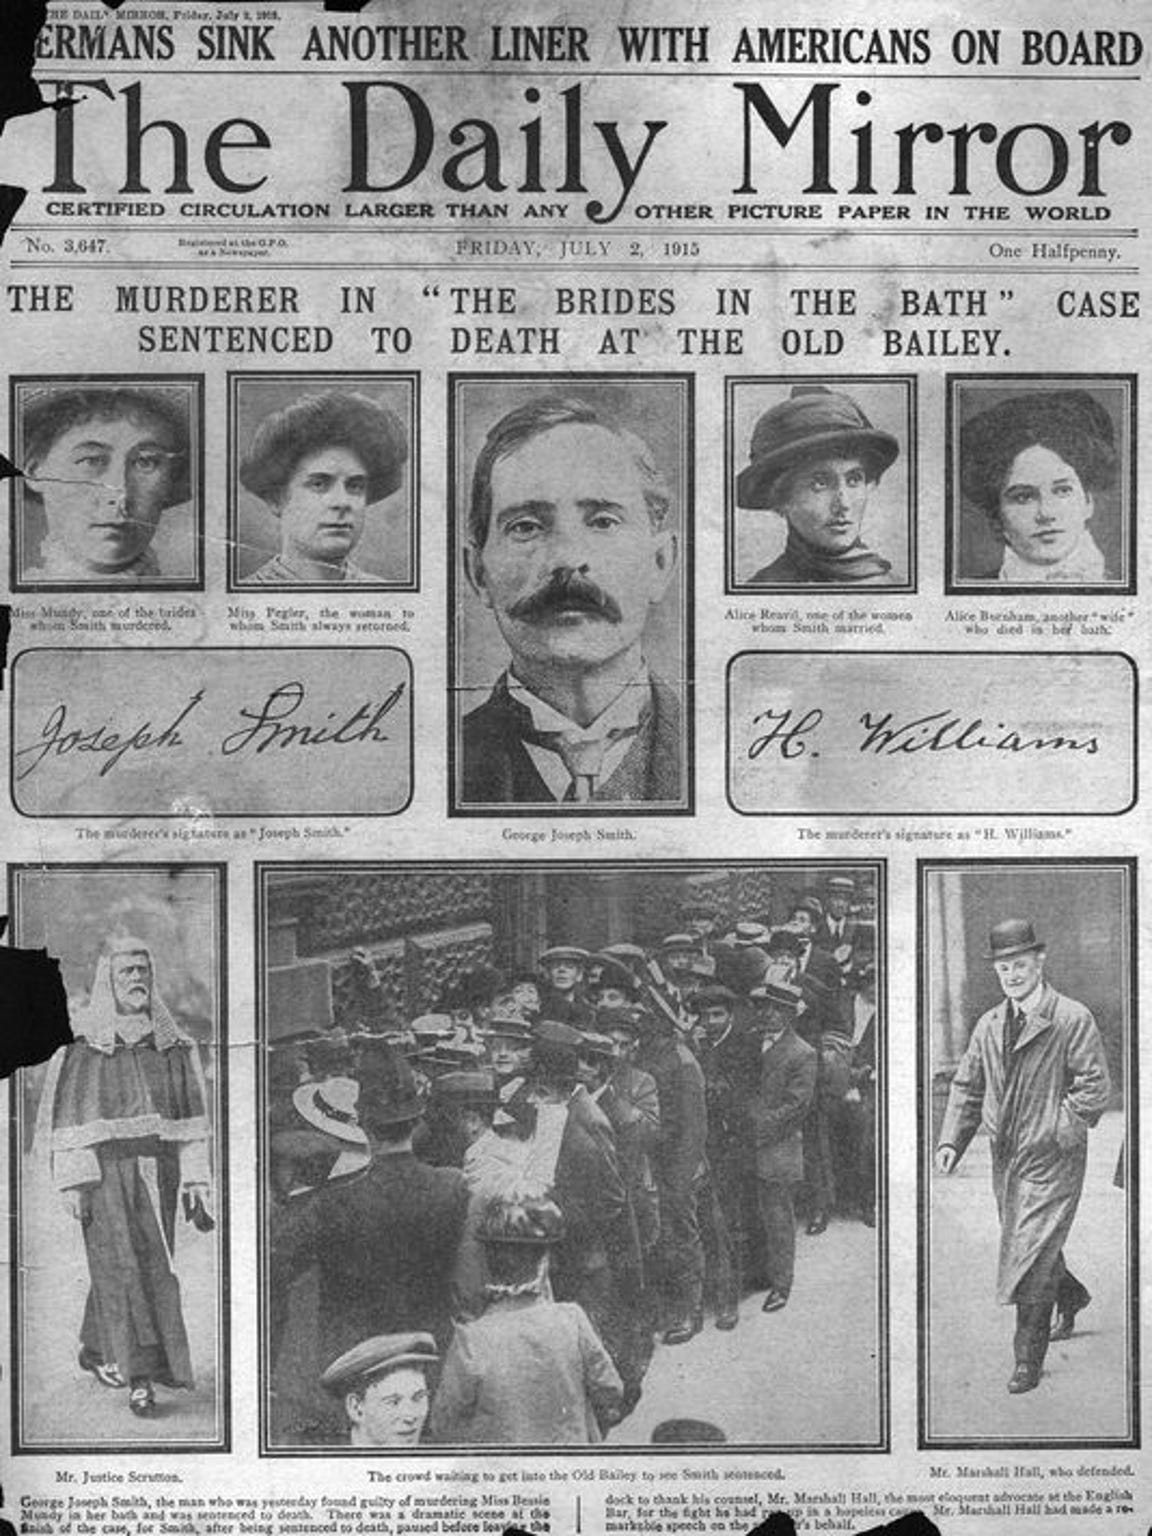 The Daily Mirror in London on July 2, 1915, details